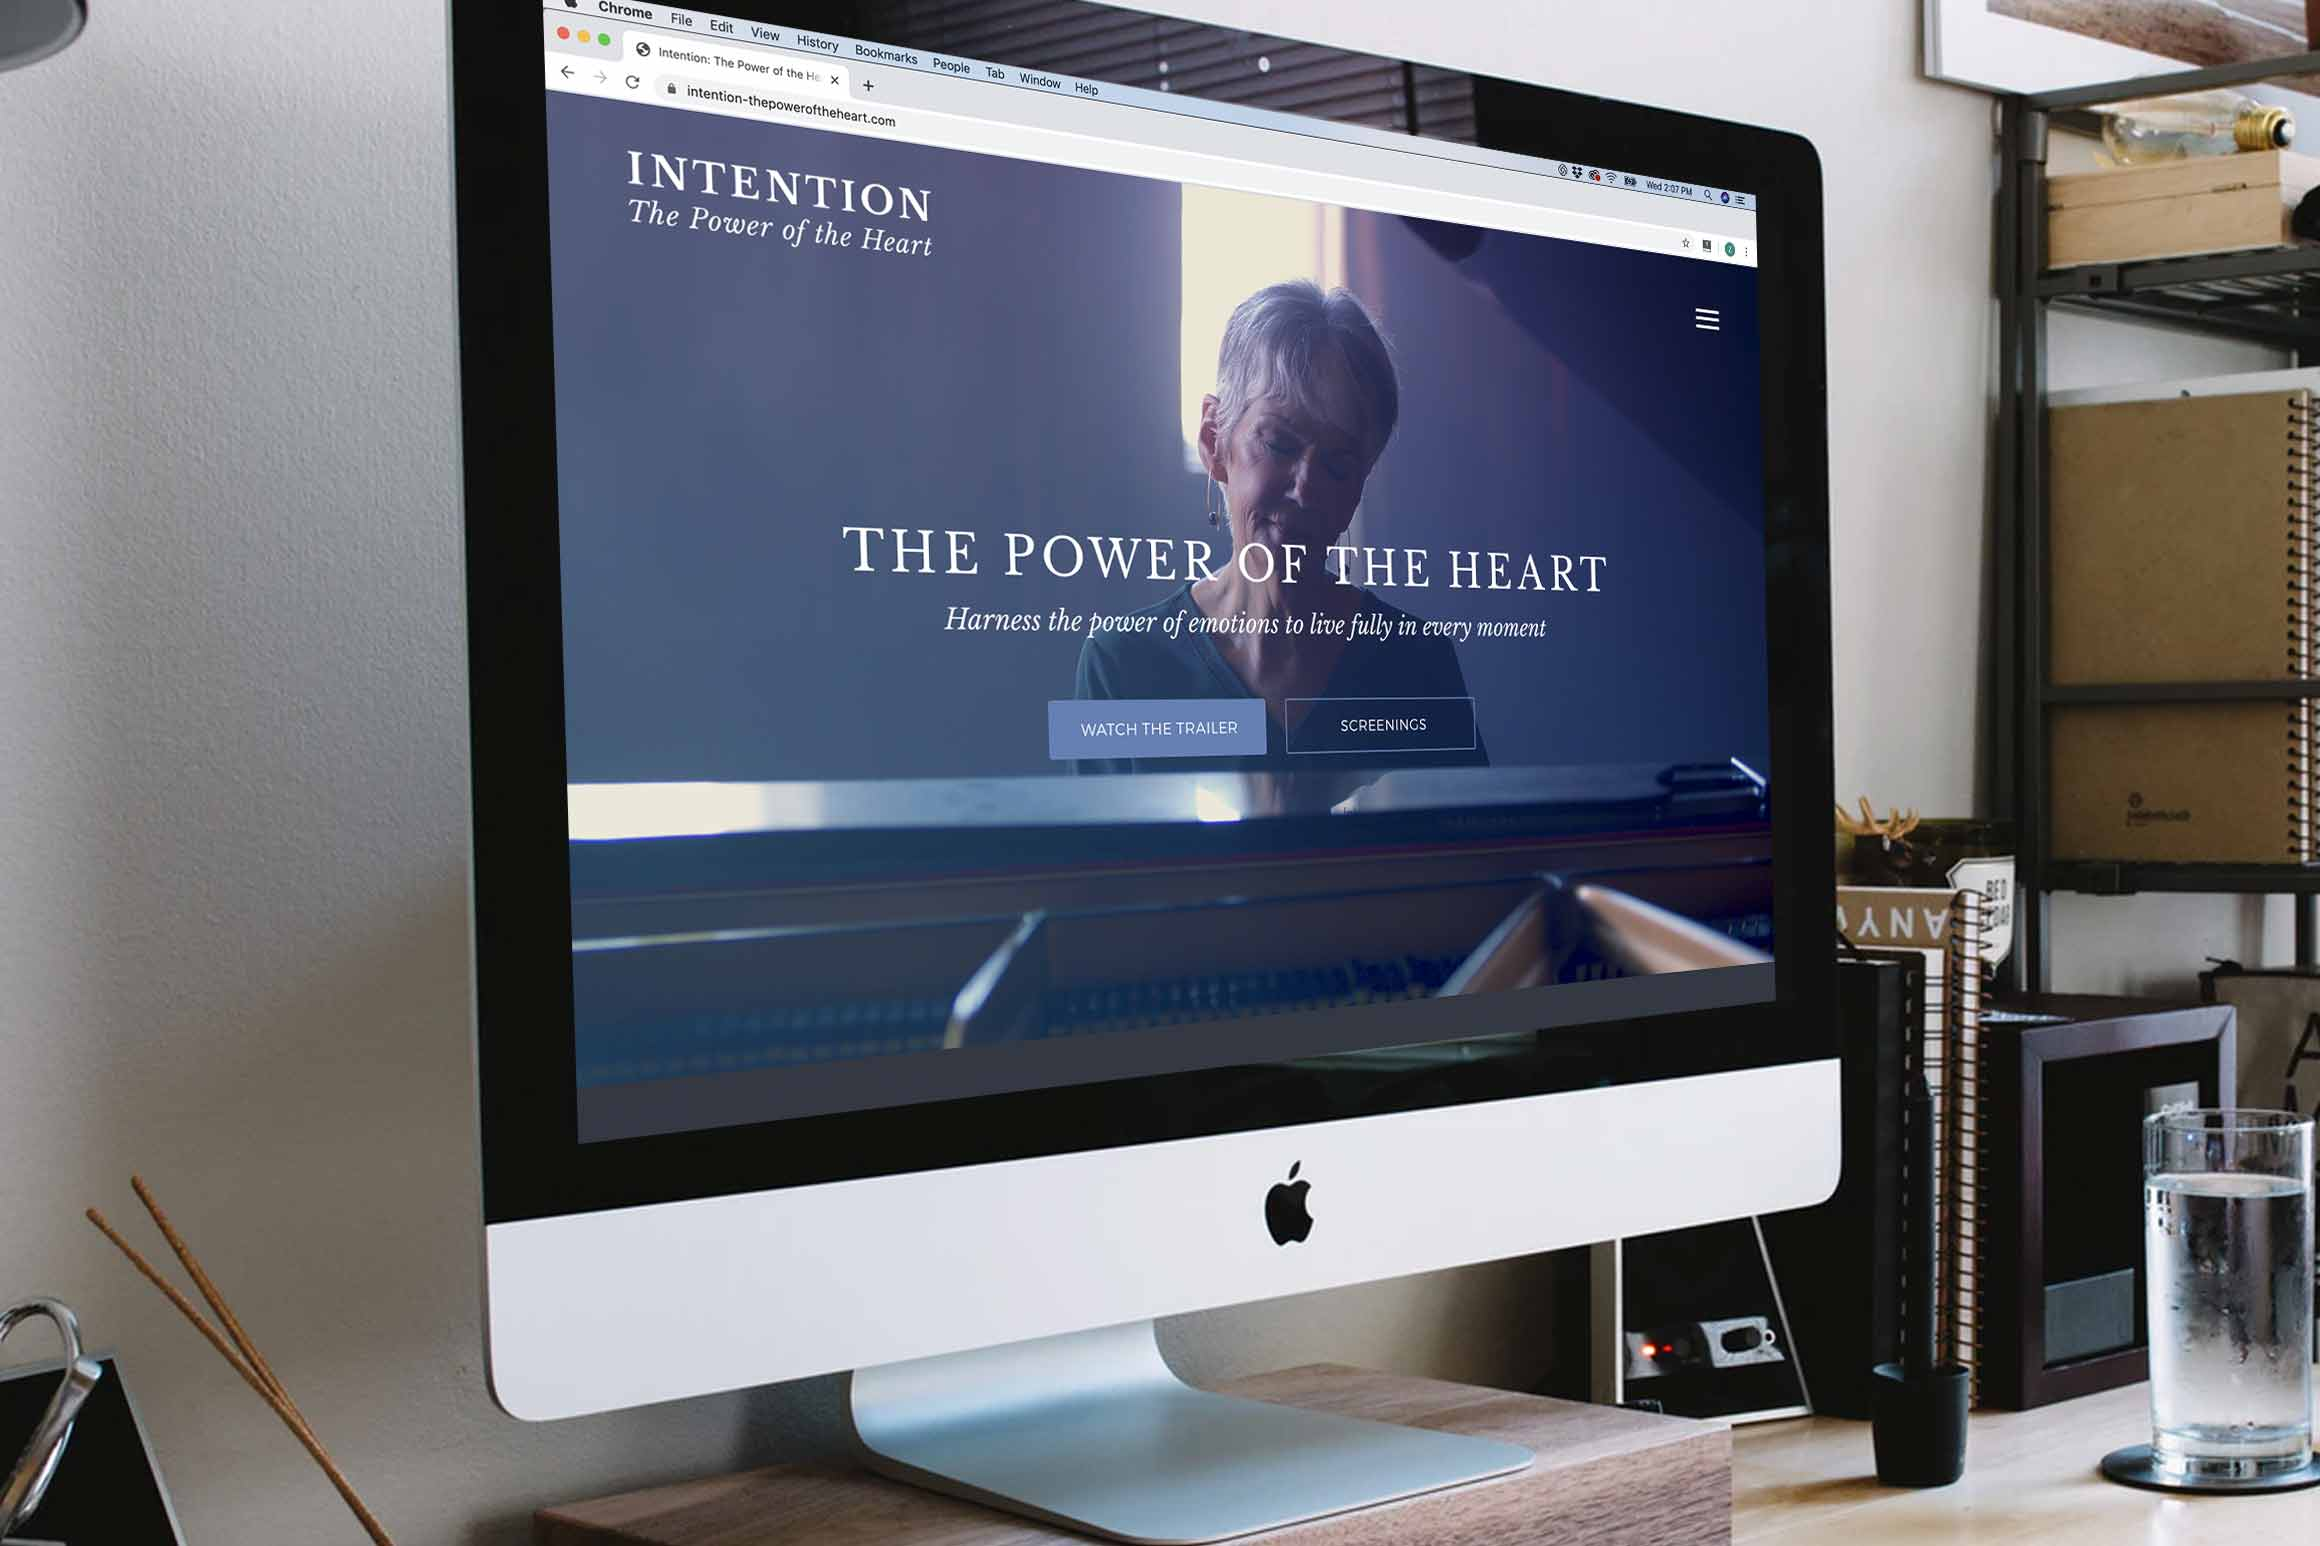 Intention: The Power of the Heart Documentary Website